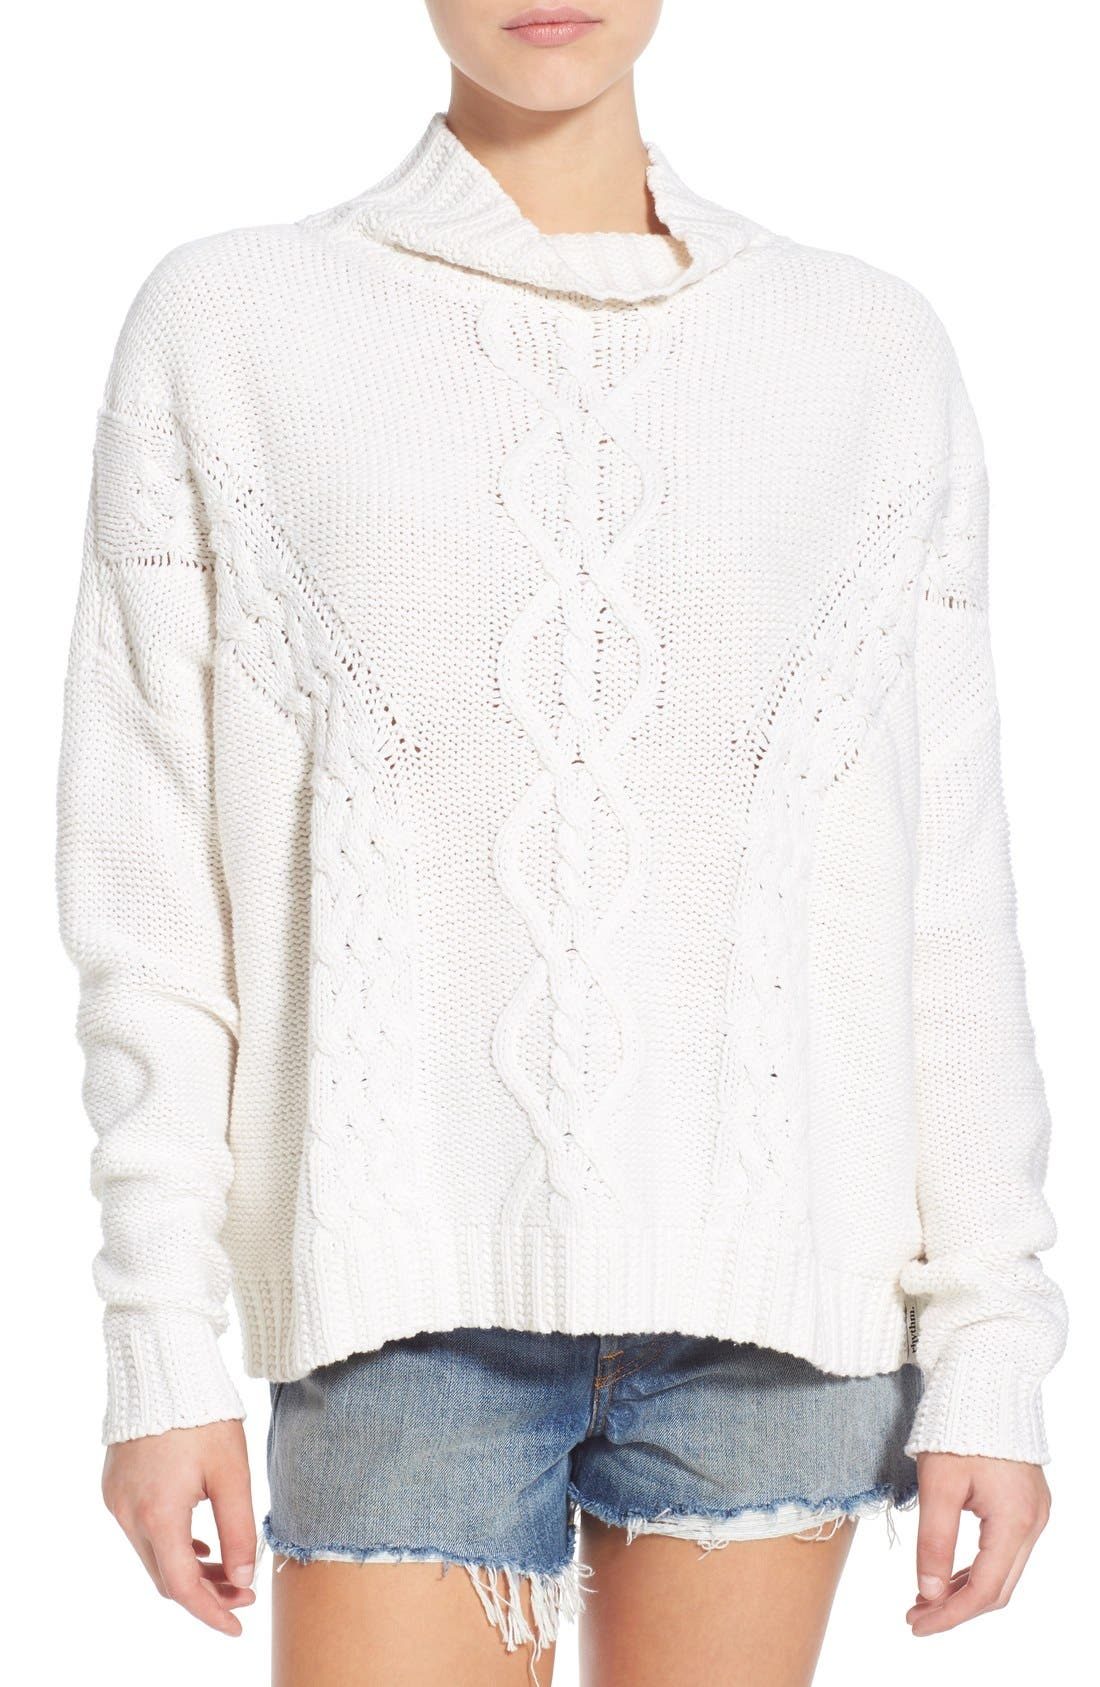 RHYTHM, 'Yacht' Cable Knit Turtleneck Sweater, Main thumbnail 1, color, 100